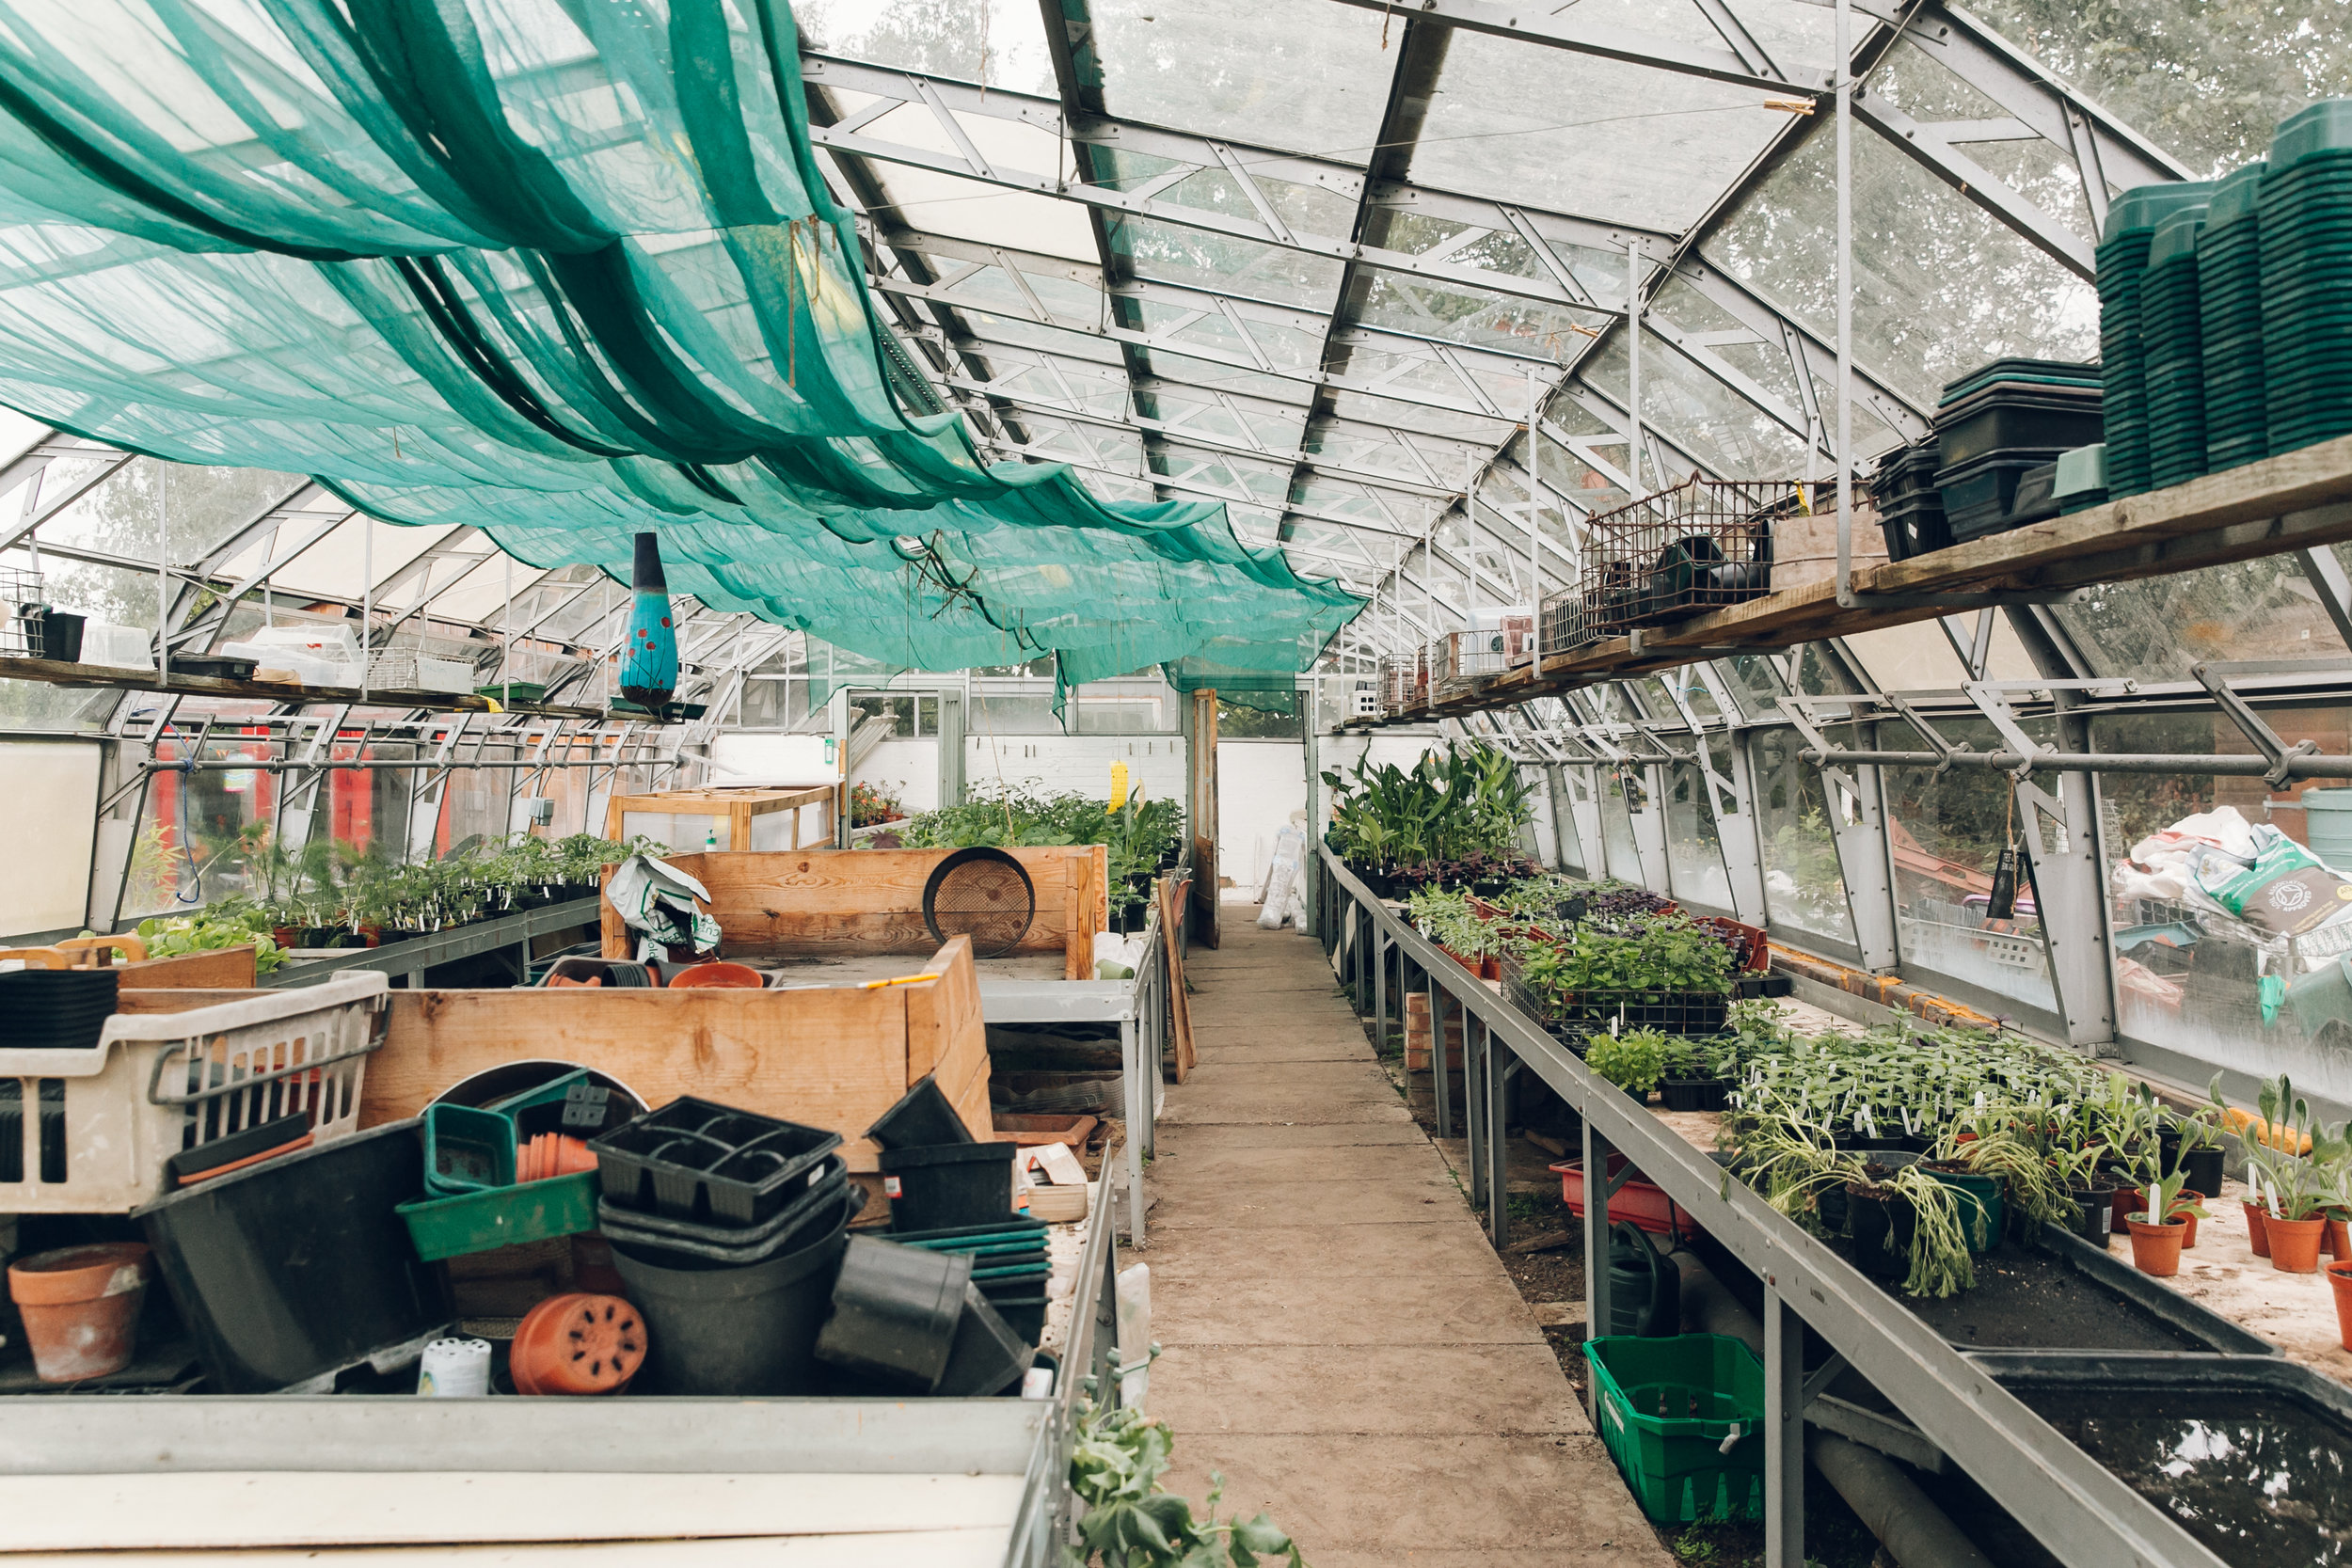 Brockwell Park Community Greenhouses photographed by Haarkon